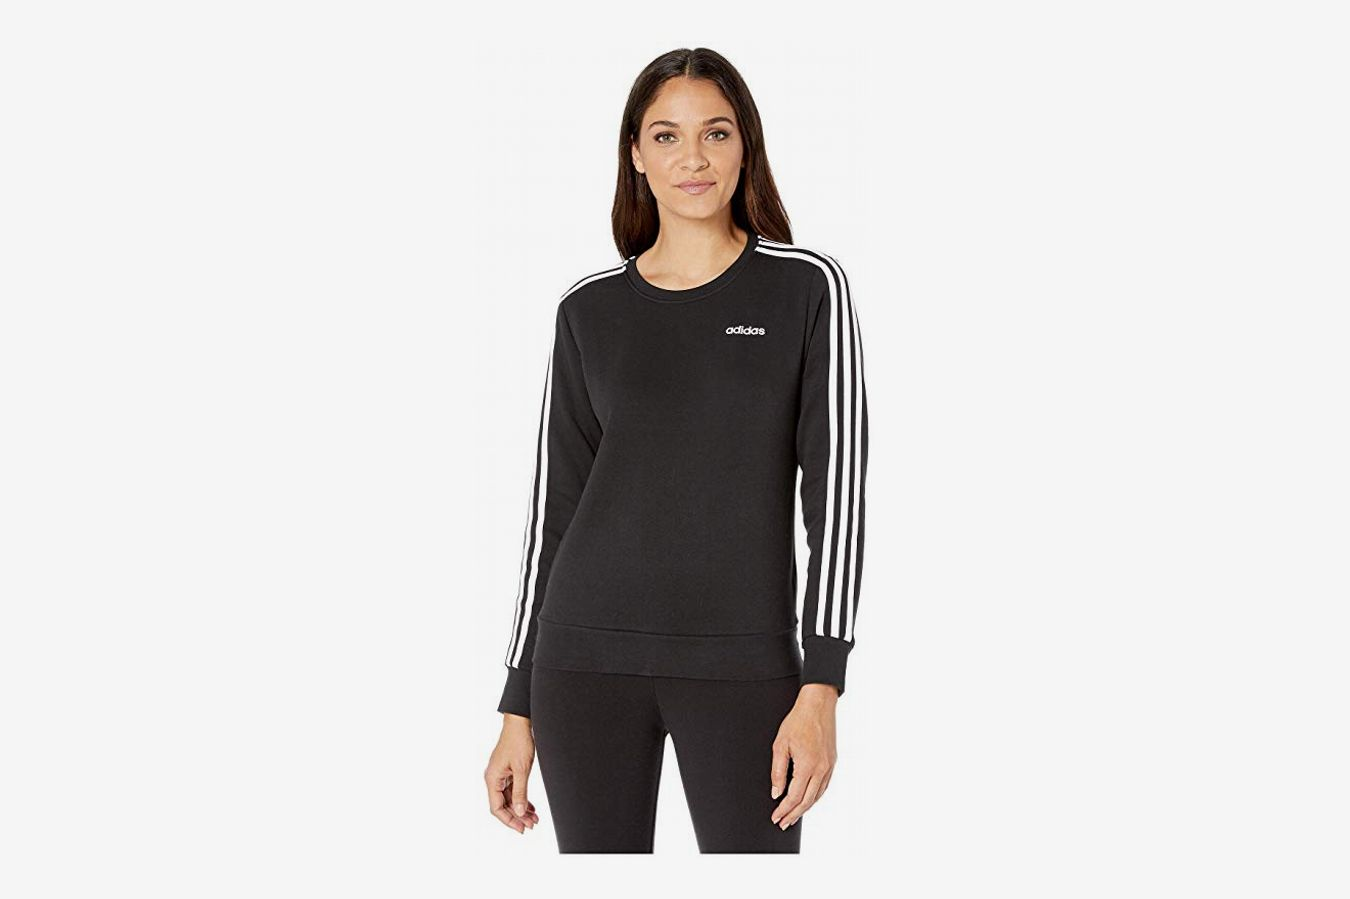 adidas Essential 3 Stripes Fleece Crew Sweatshirt